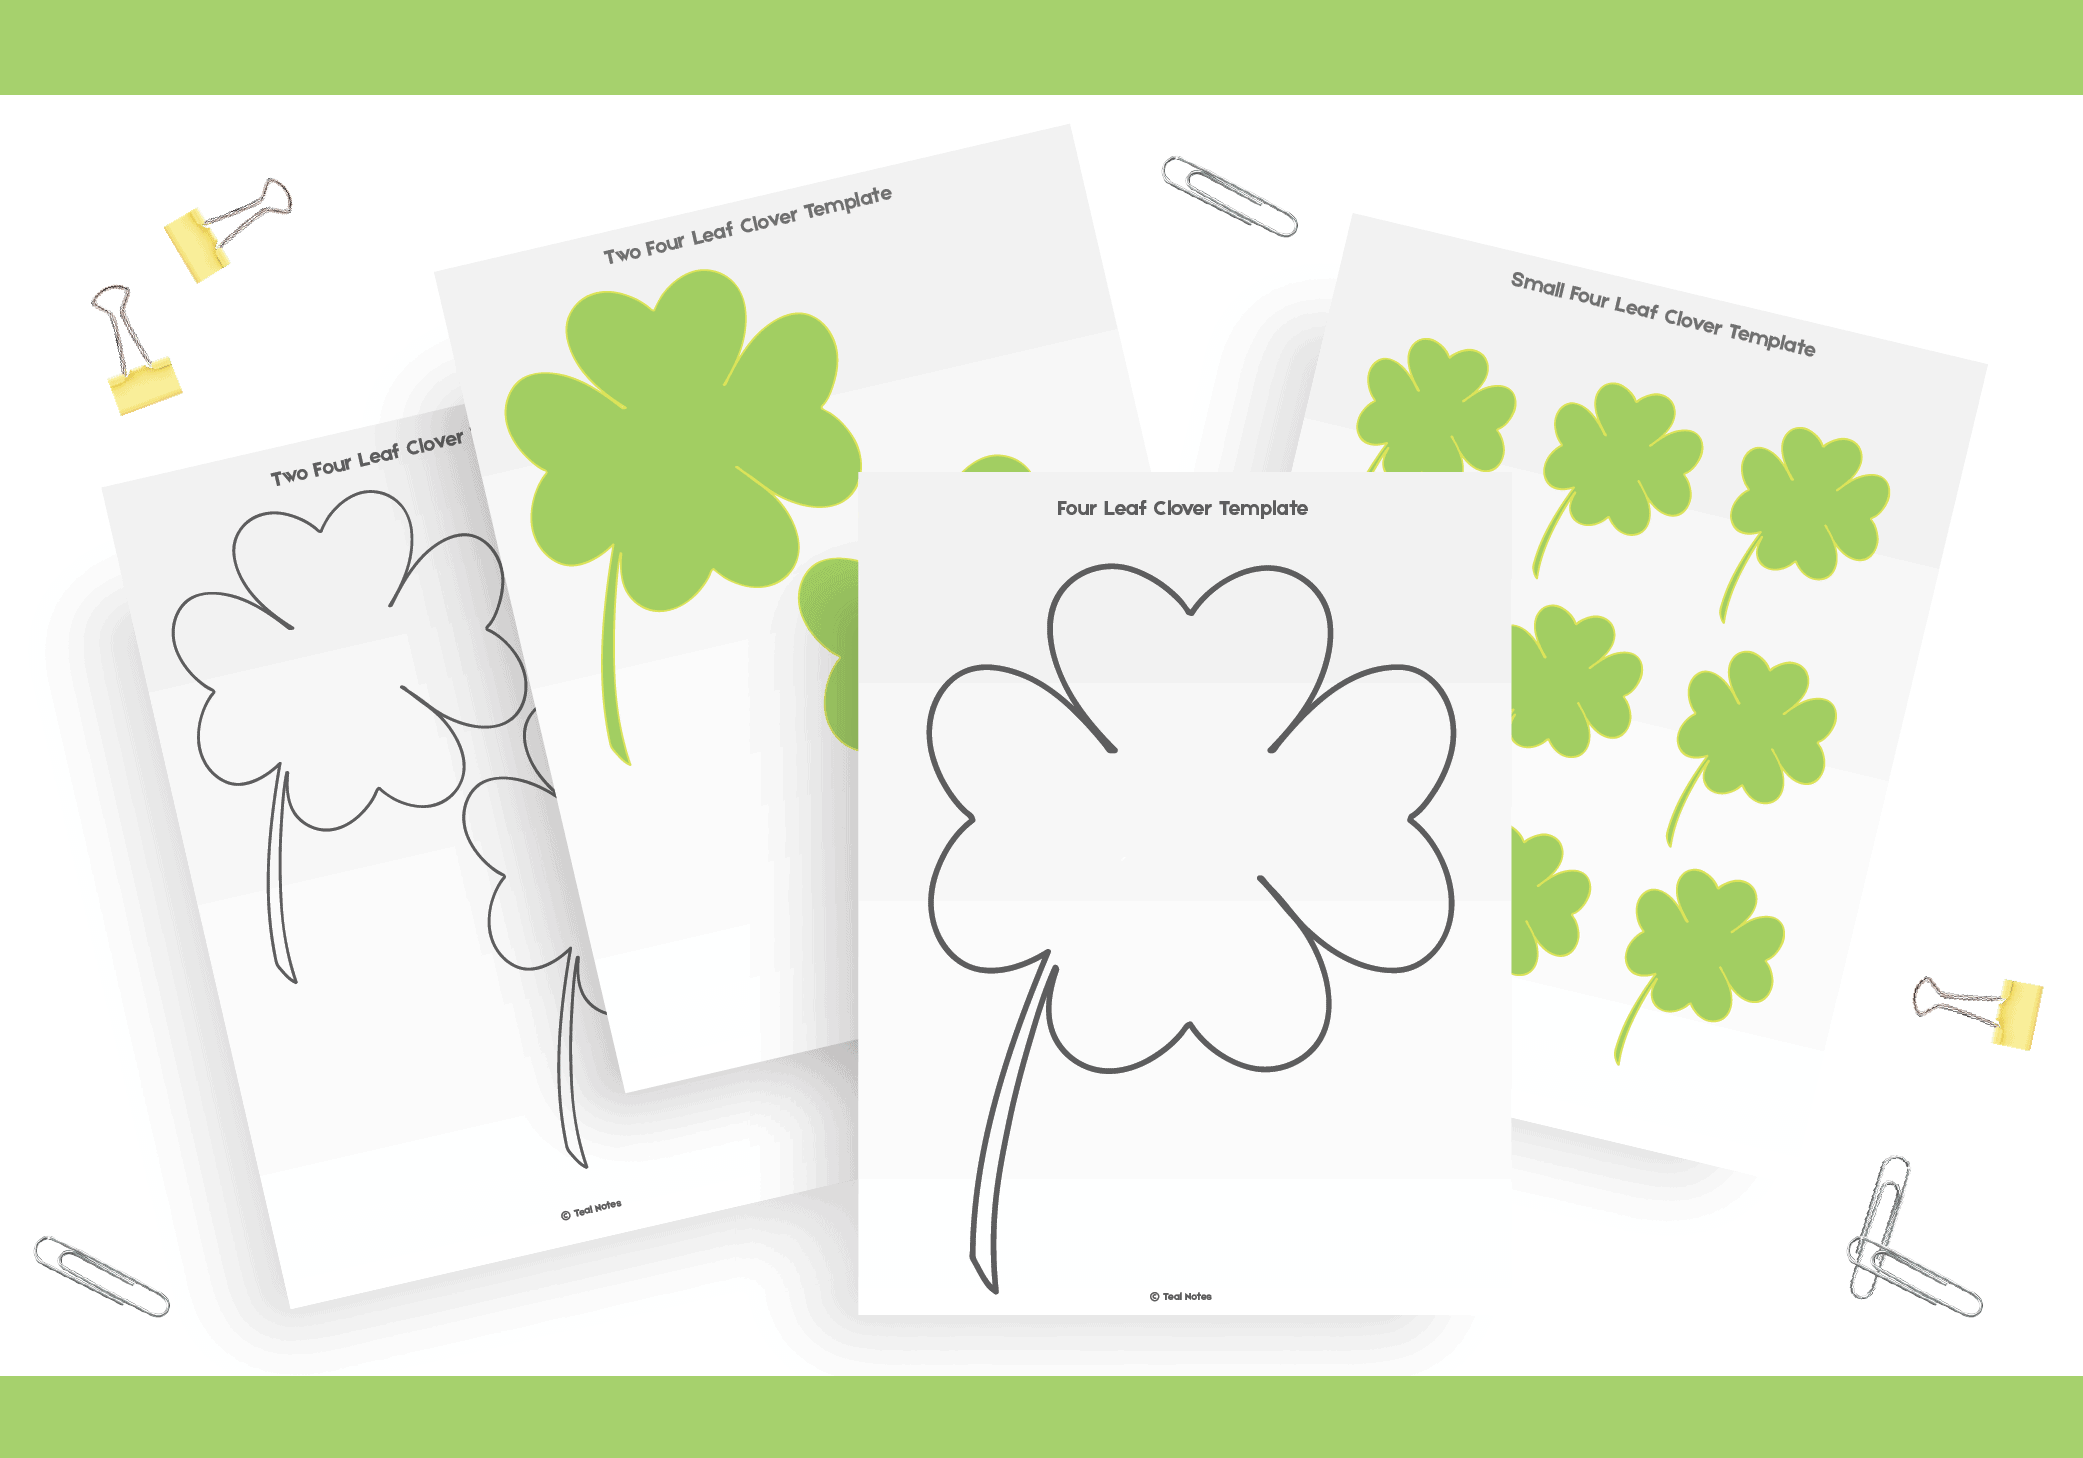 picture regarding Free Printable Shamrock Template identify 4 Leaf Clover Template: Totally free Shamrock Template Printable